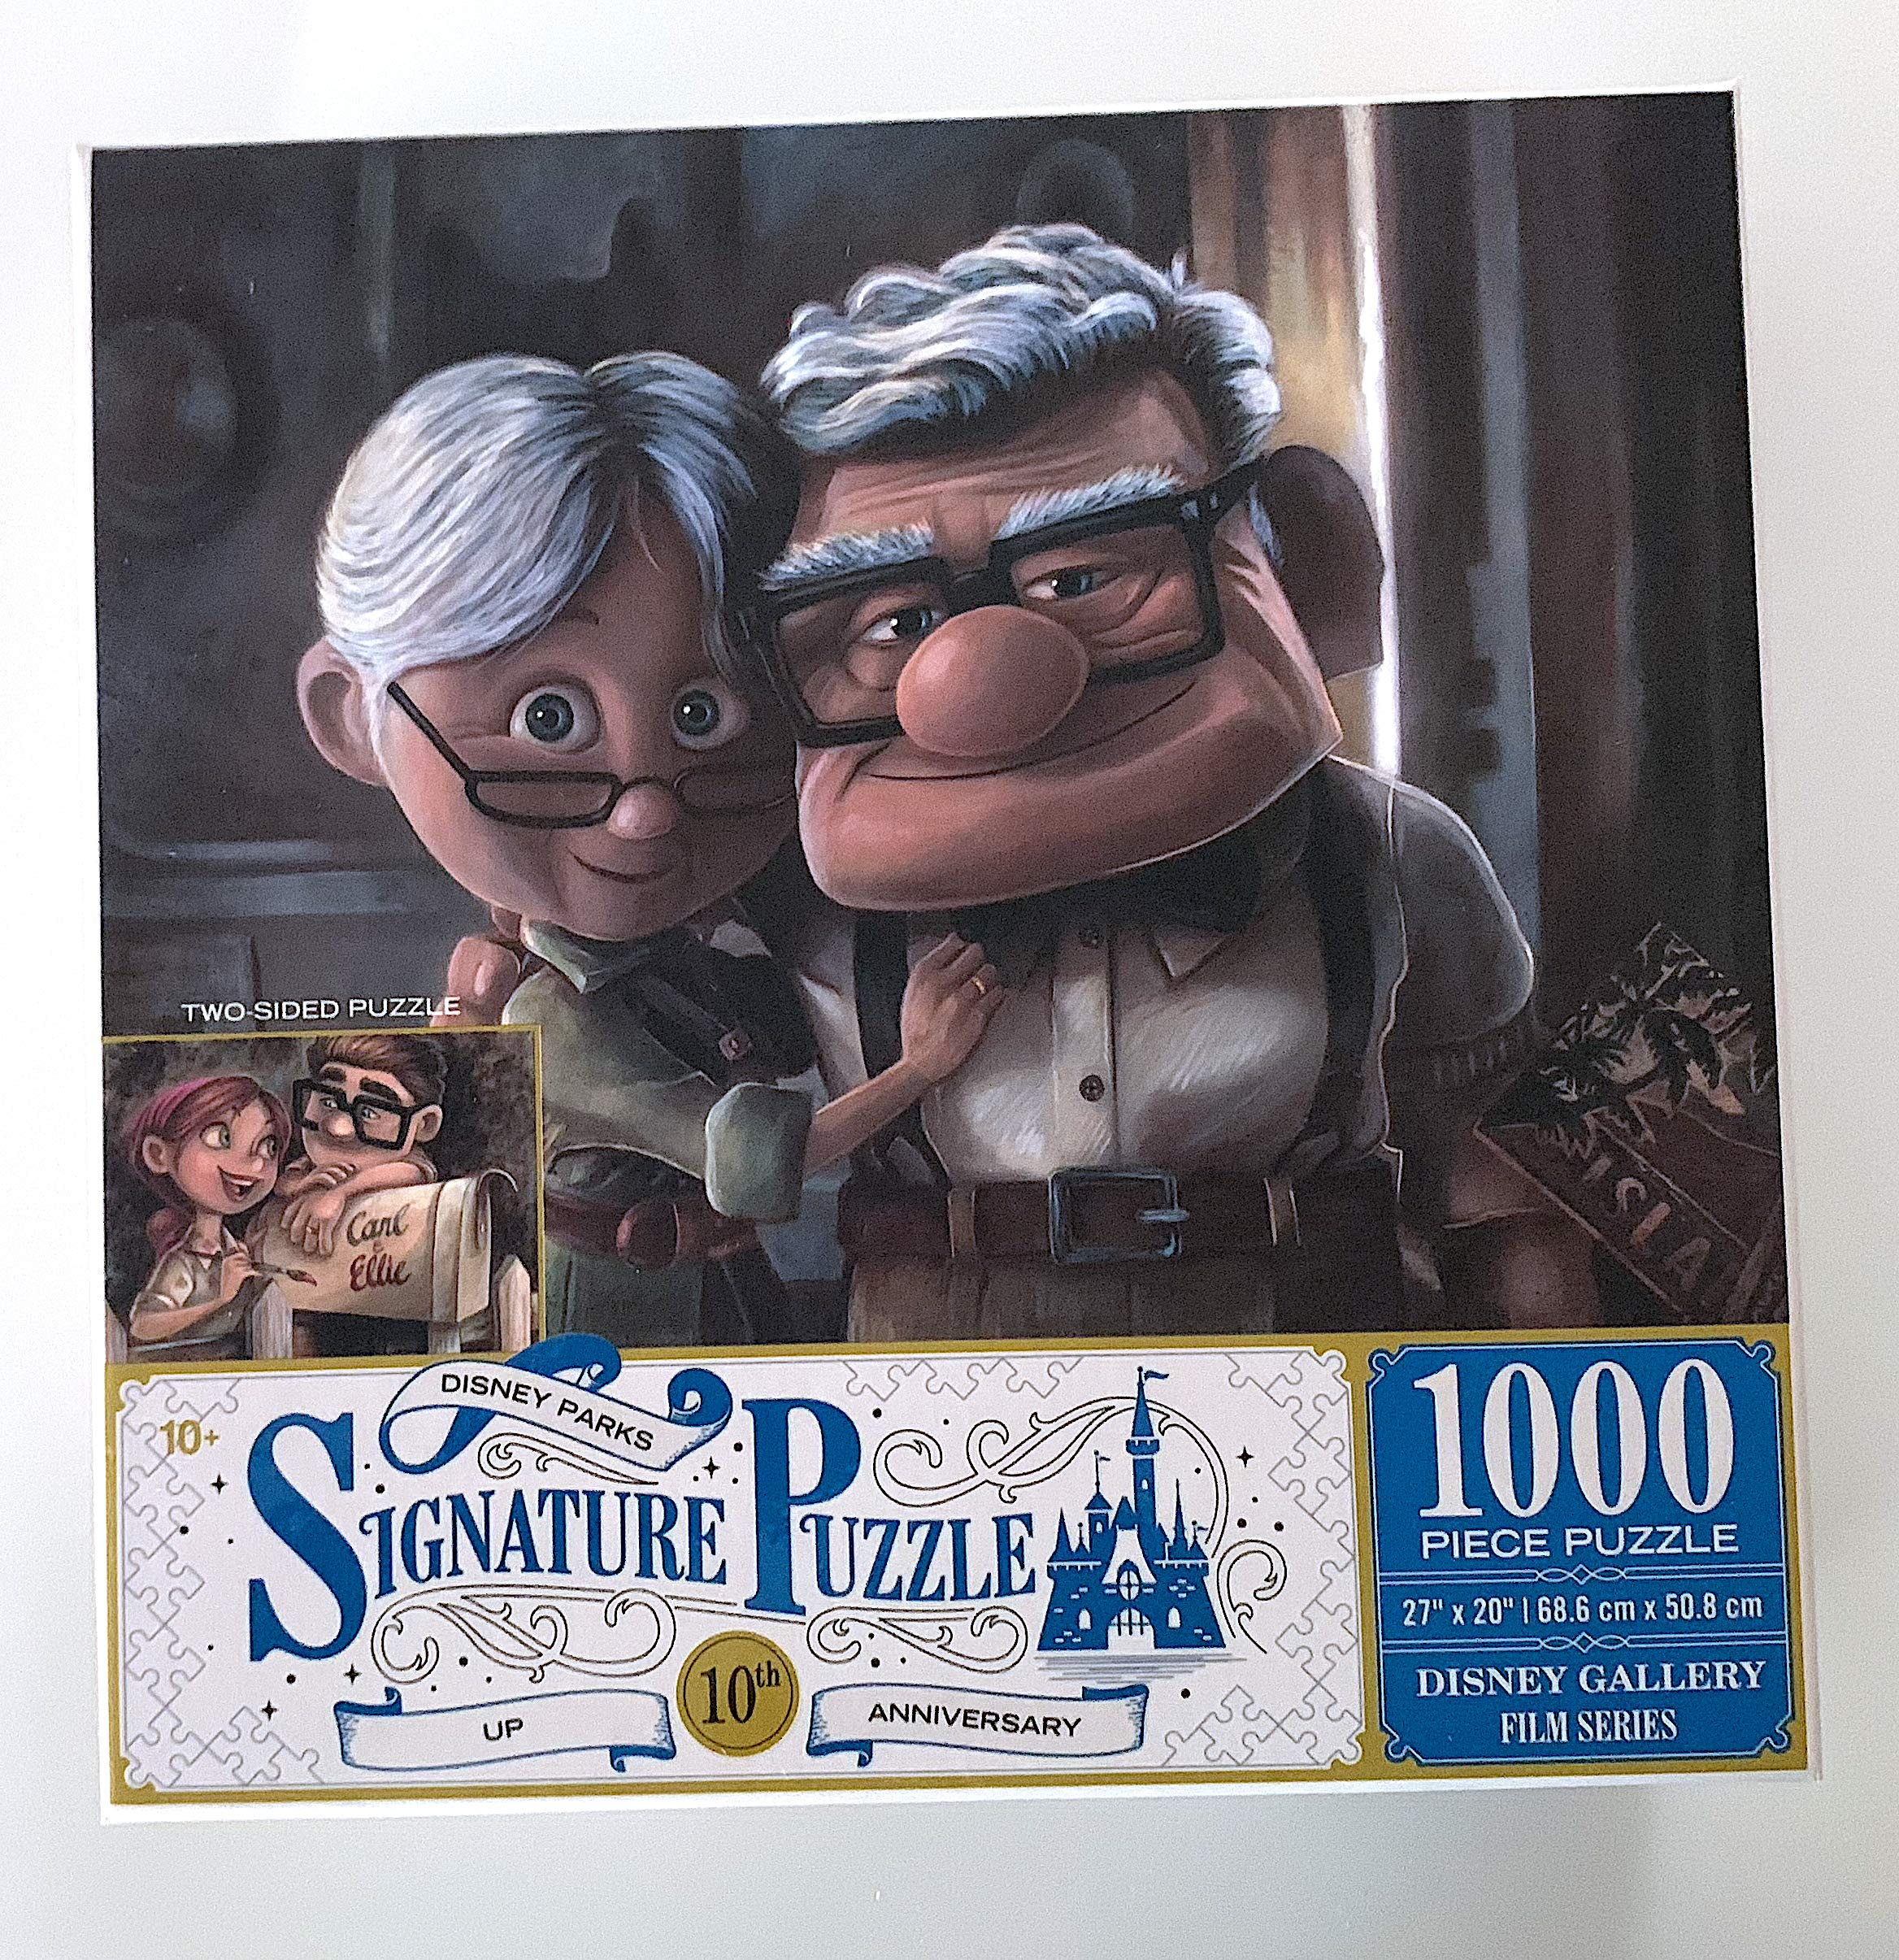 DisneyParks Up! Carl Ellie 10th Anniversary Two Side 1000 Piece Puzzle New by Disney